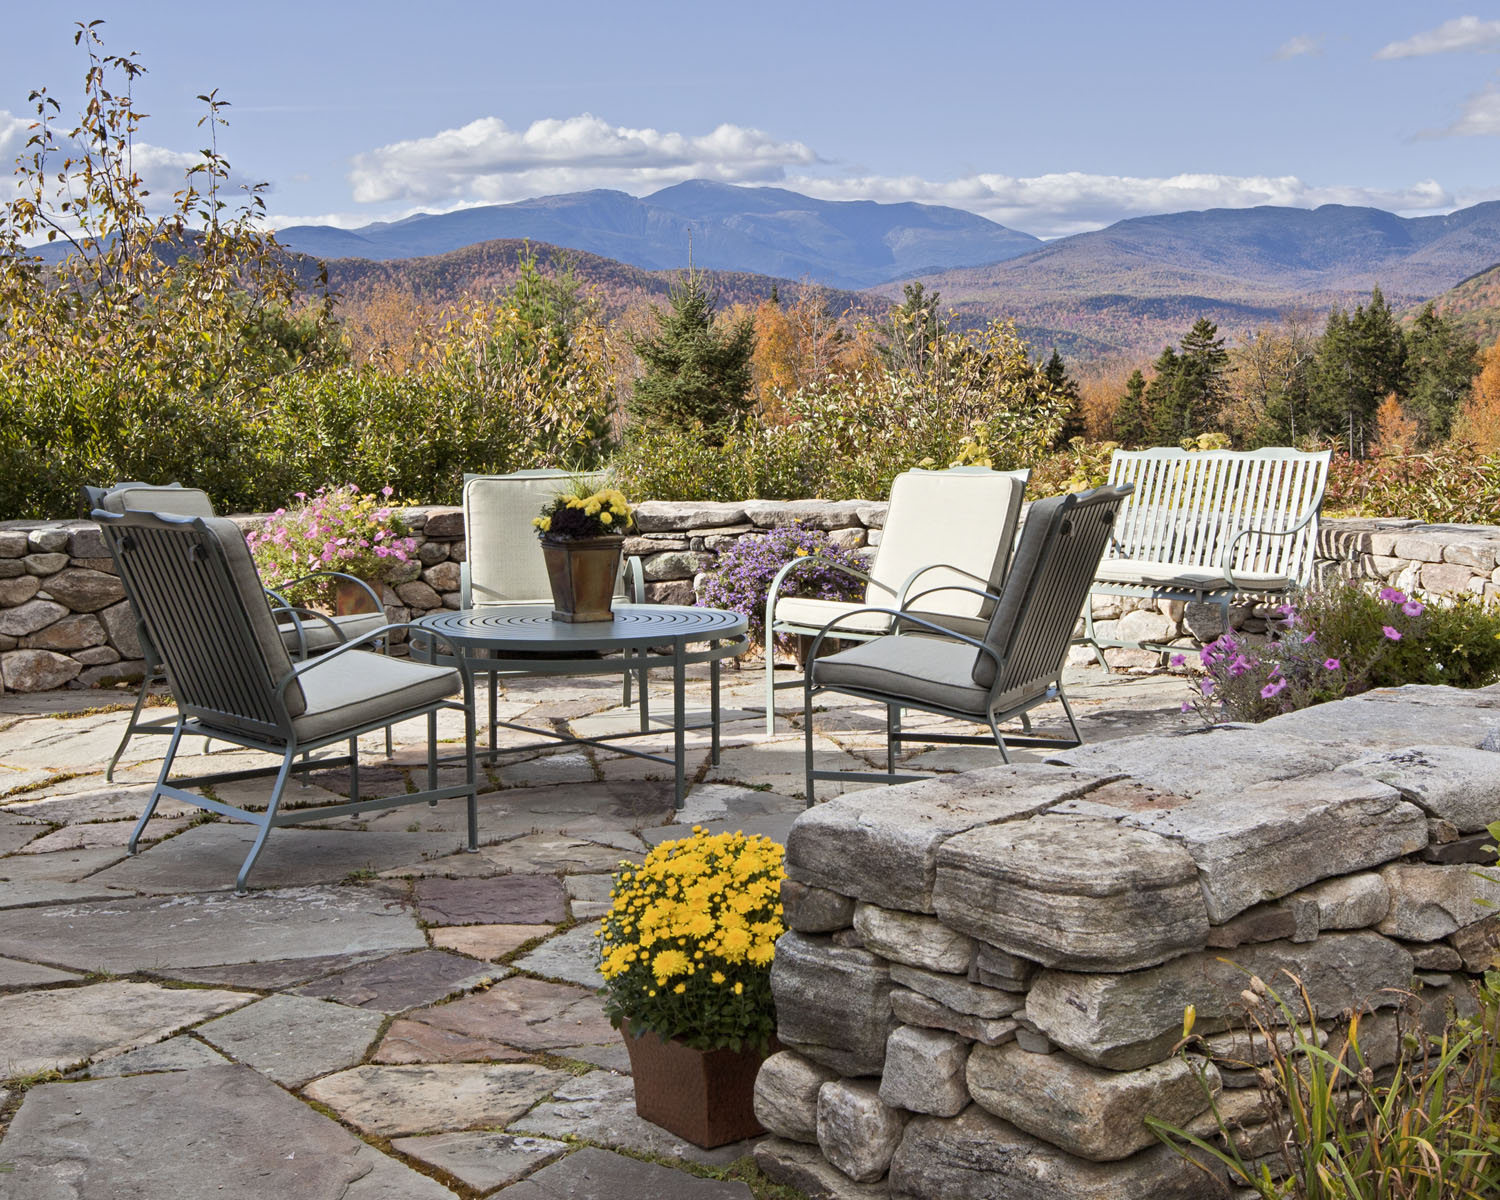 This space designed for living outdoors in the White Mountains was designed by Boston interior designer Elizabeth Swartz Interiors utilizing a short stone wall to define the space.